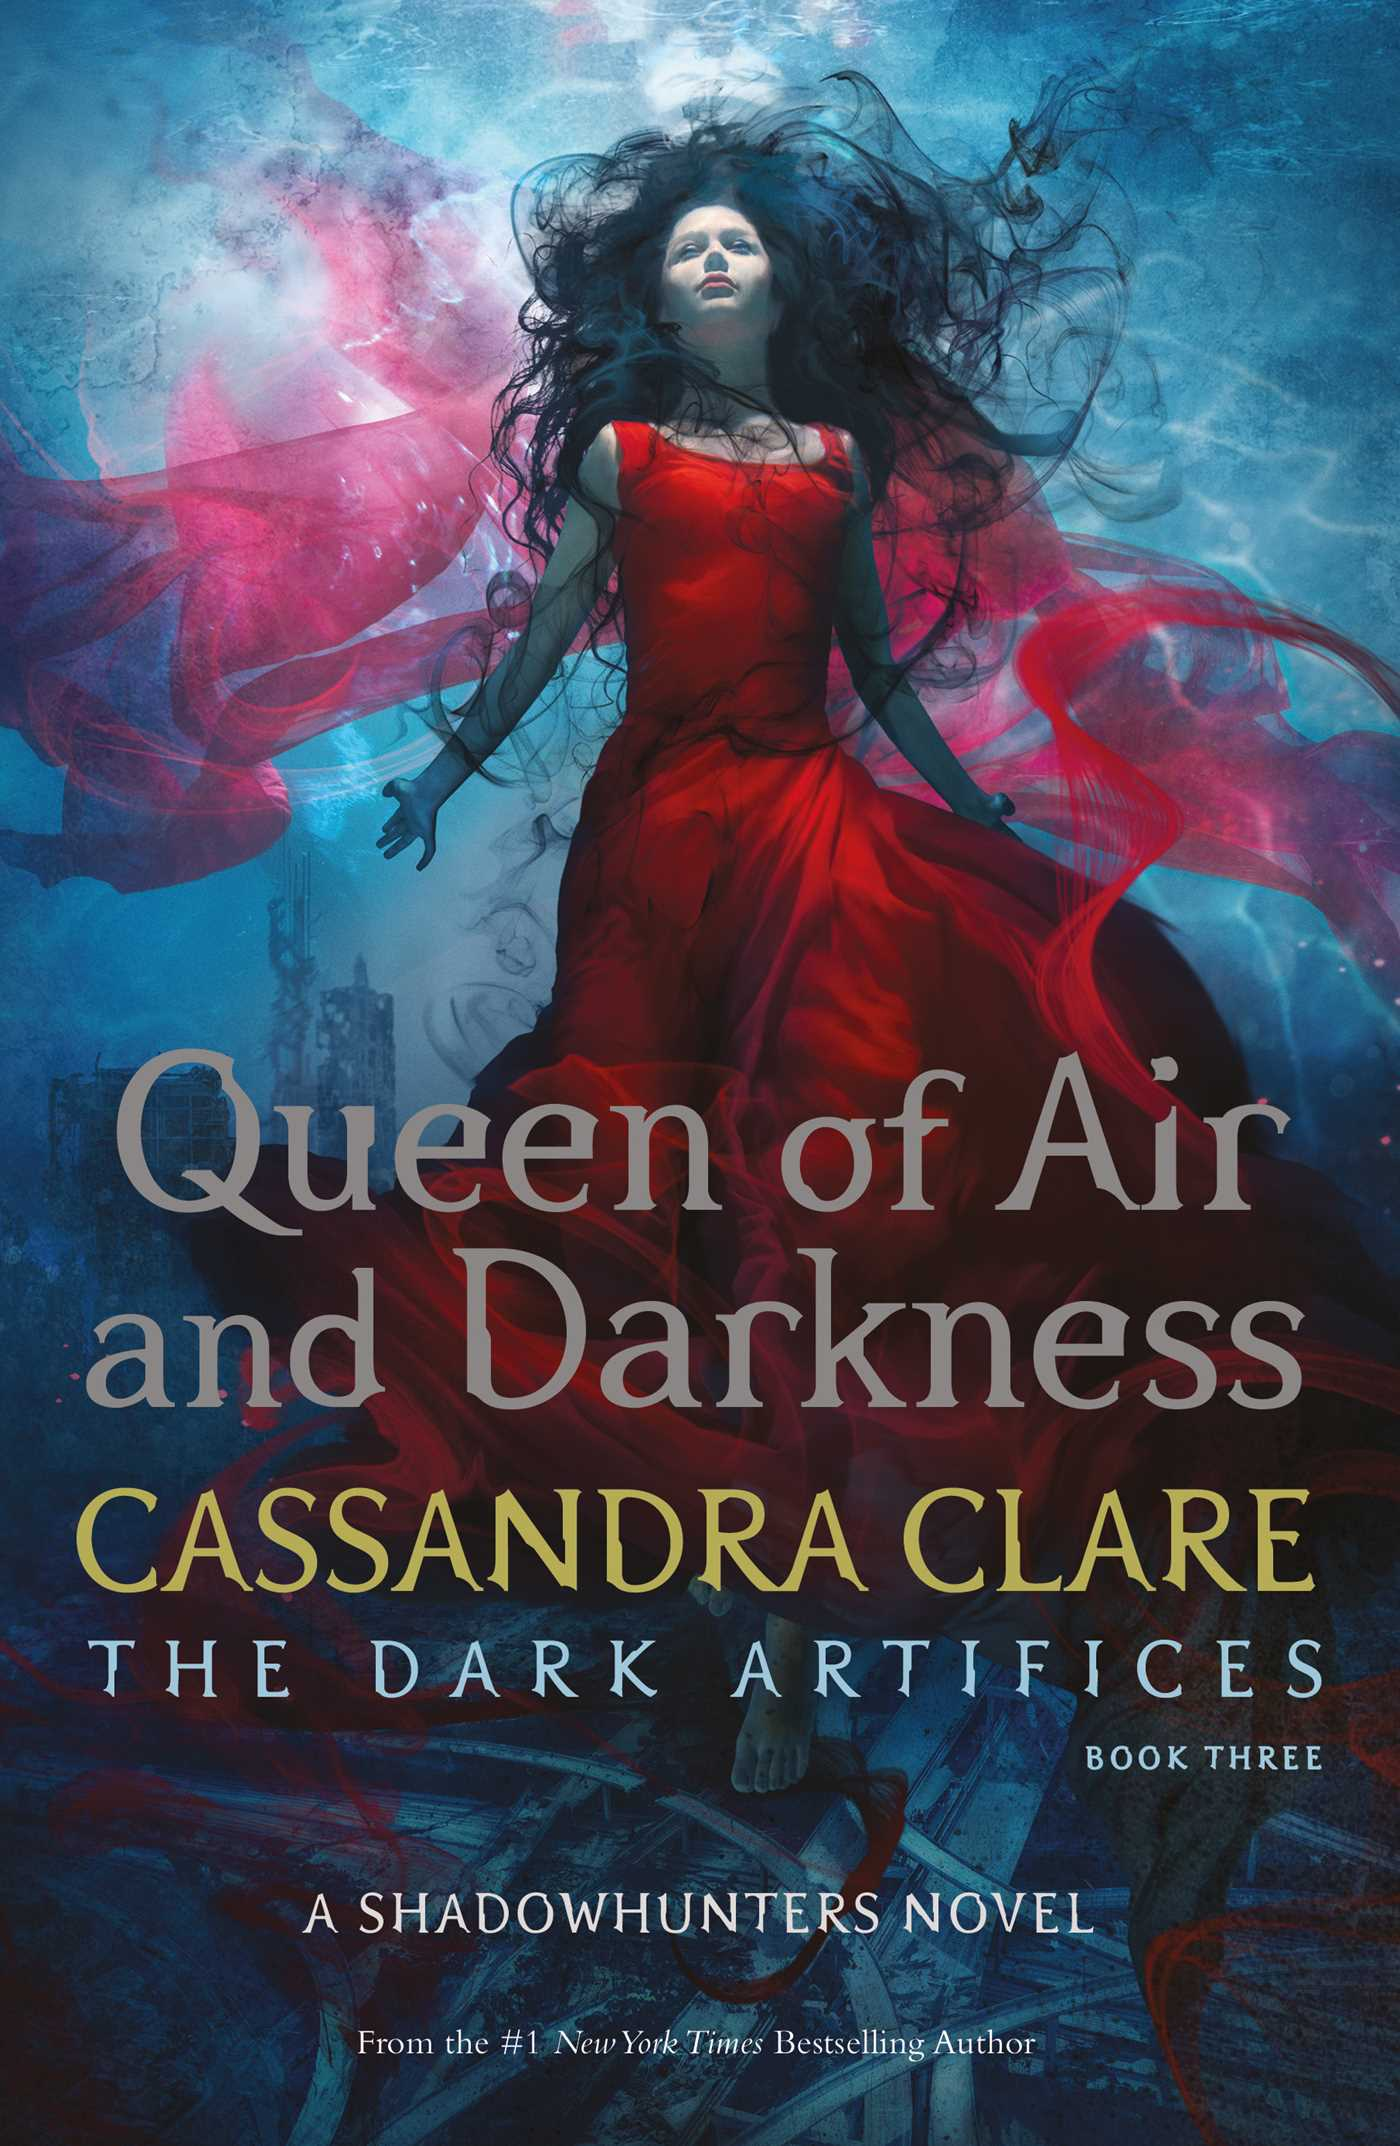 The queen of air and darkness 9781471116704 hr